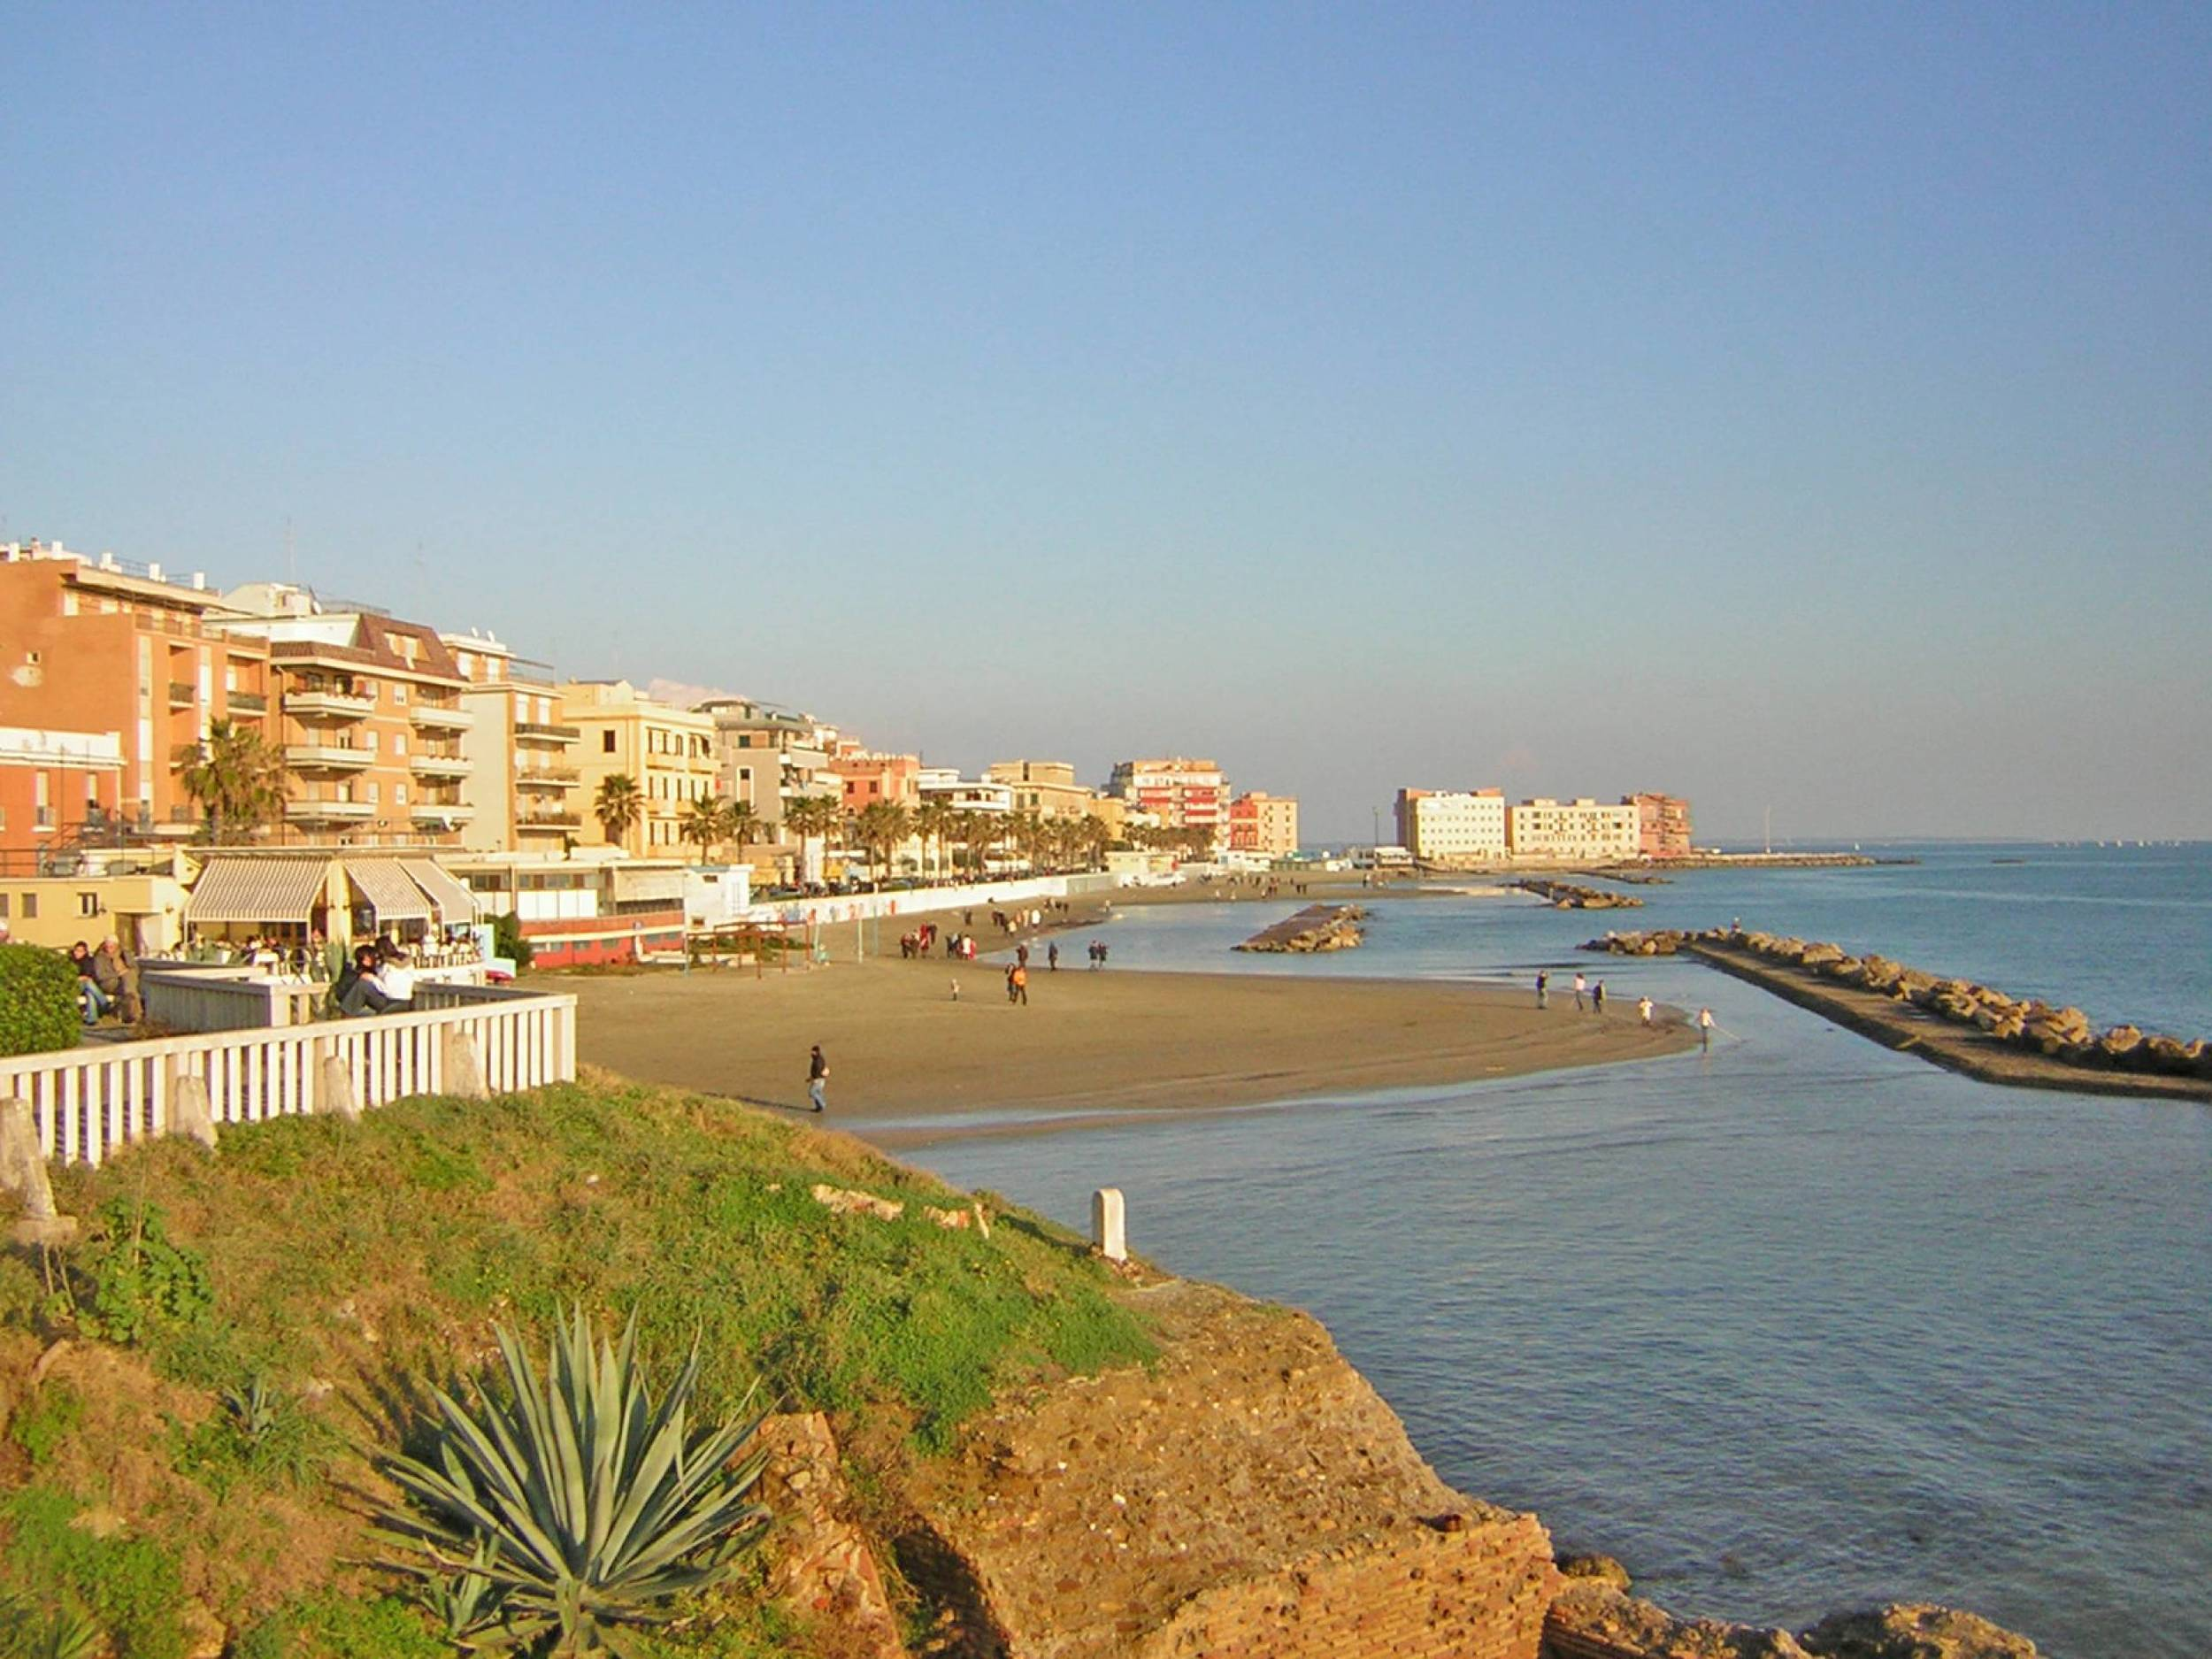 ANZIO BEACH   Anzio is a bigger city with some beach opportunities. Go to Anzio if it is not just about beaches, but also about a small city tour with shopping and café visits.